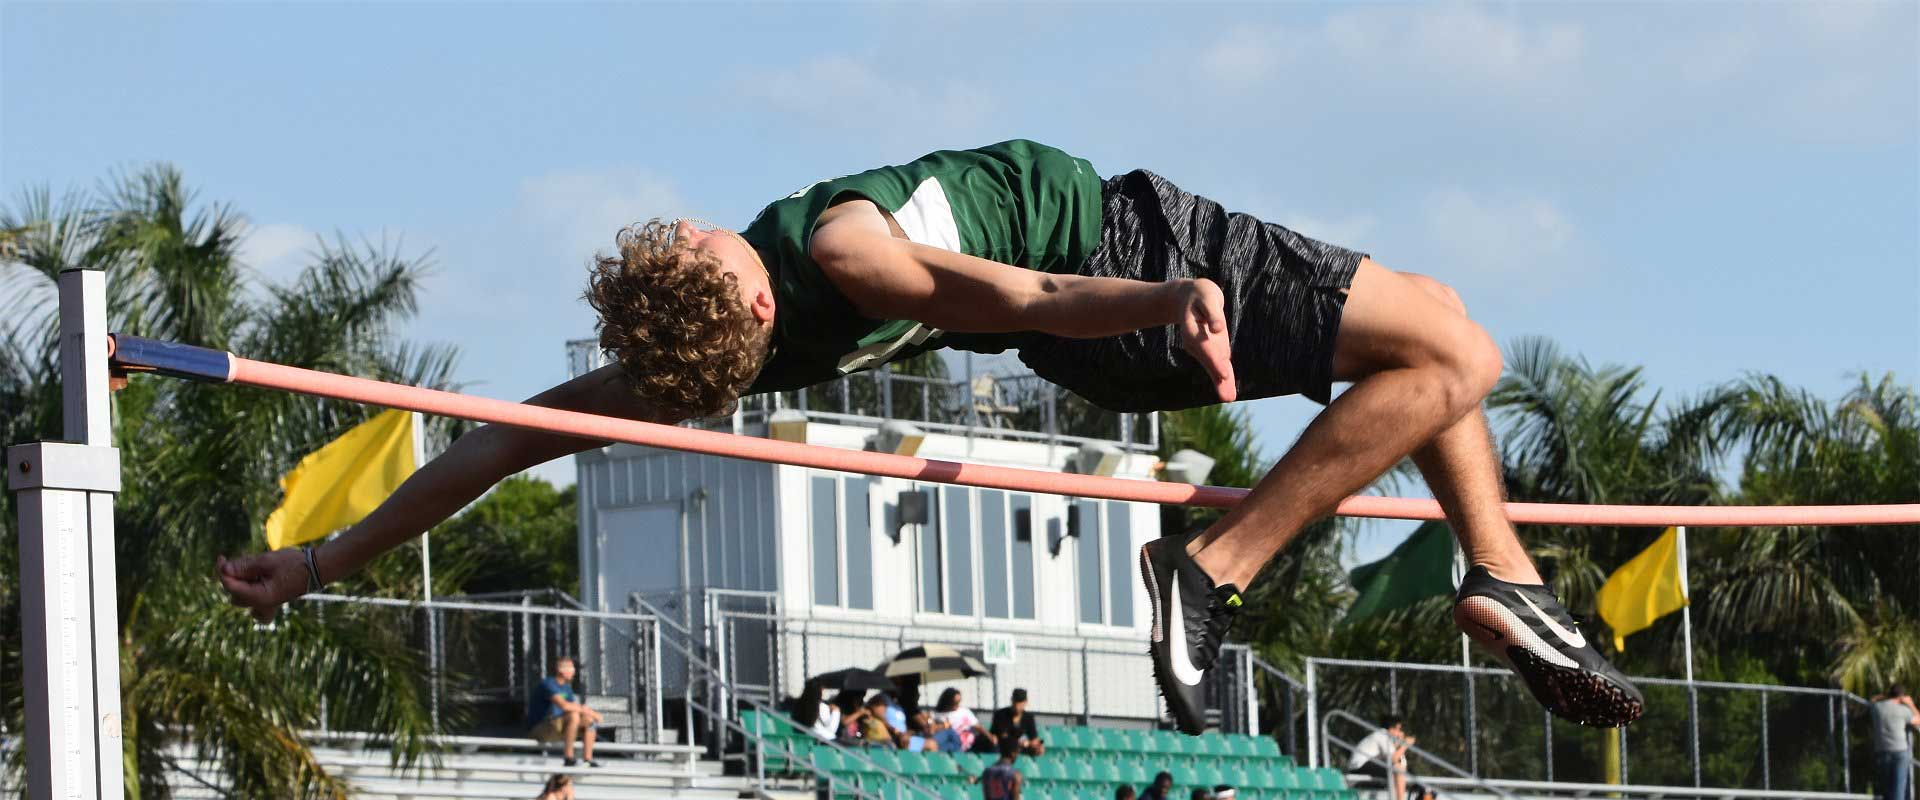 Student leaping over a high jump